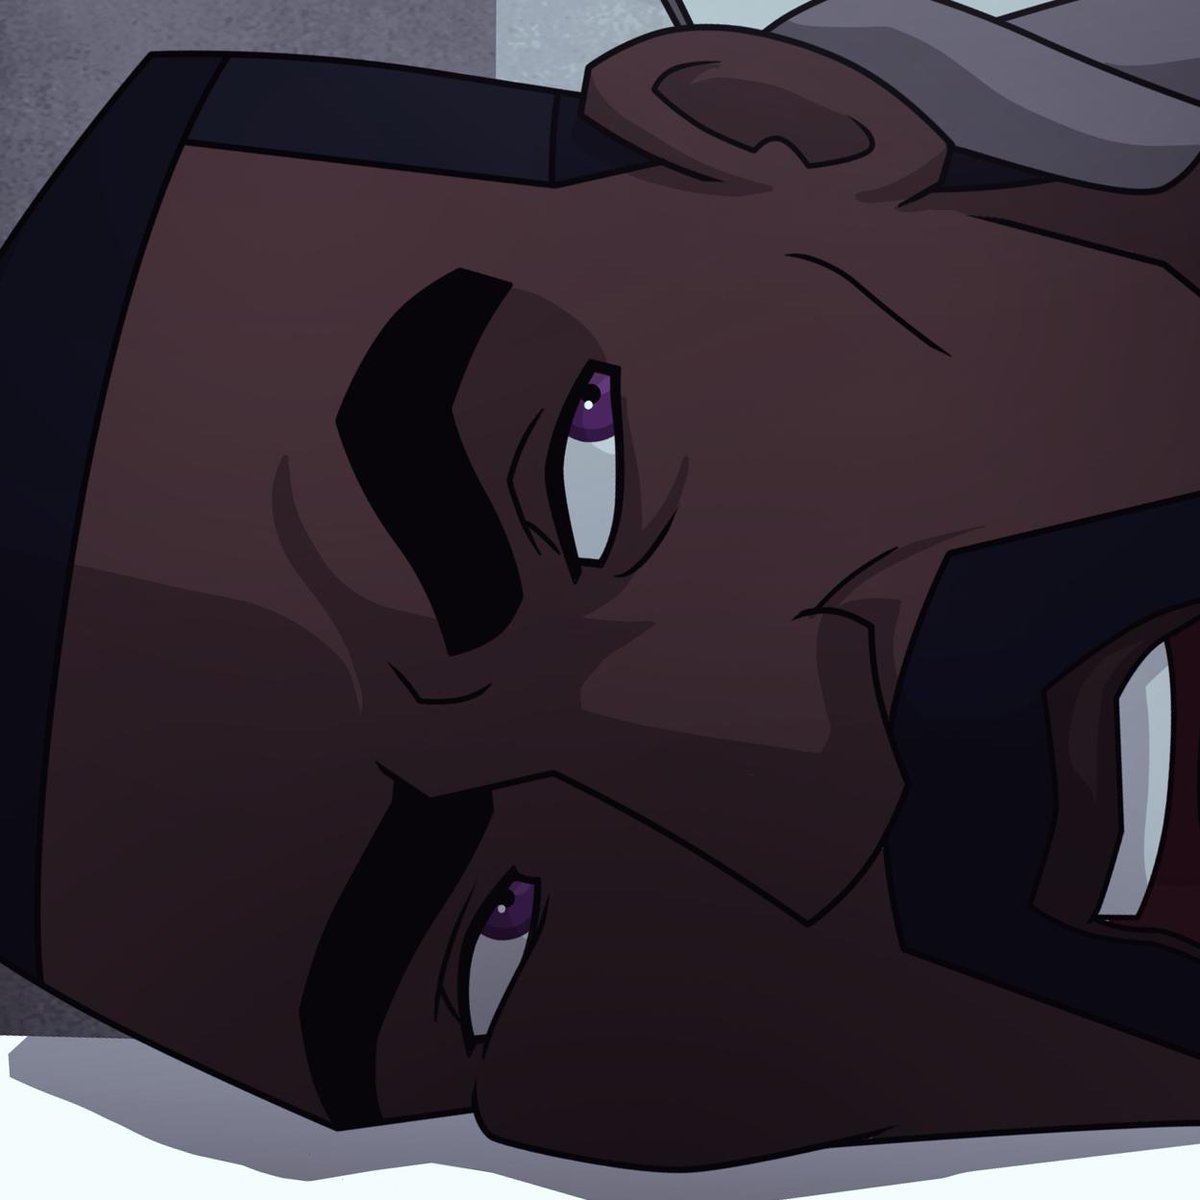 #Webcomic Update! Orson succeeds getting under Ifrit's skin and pays the price for it.  http://kamikazeanimated.com/comic/kamikaze/pg-8-impassive/…  #comic #scifi #sciencefiction